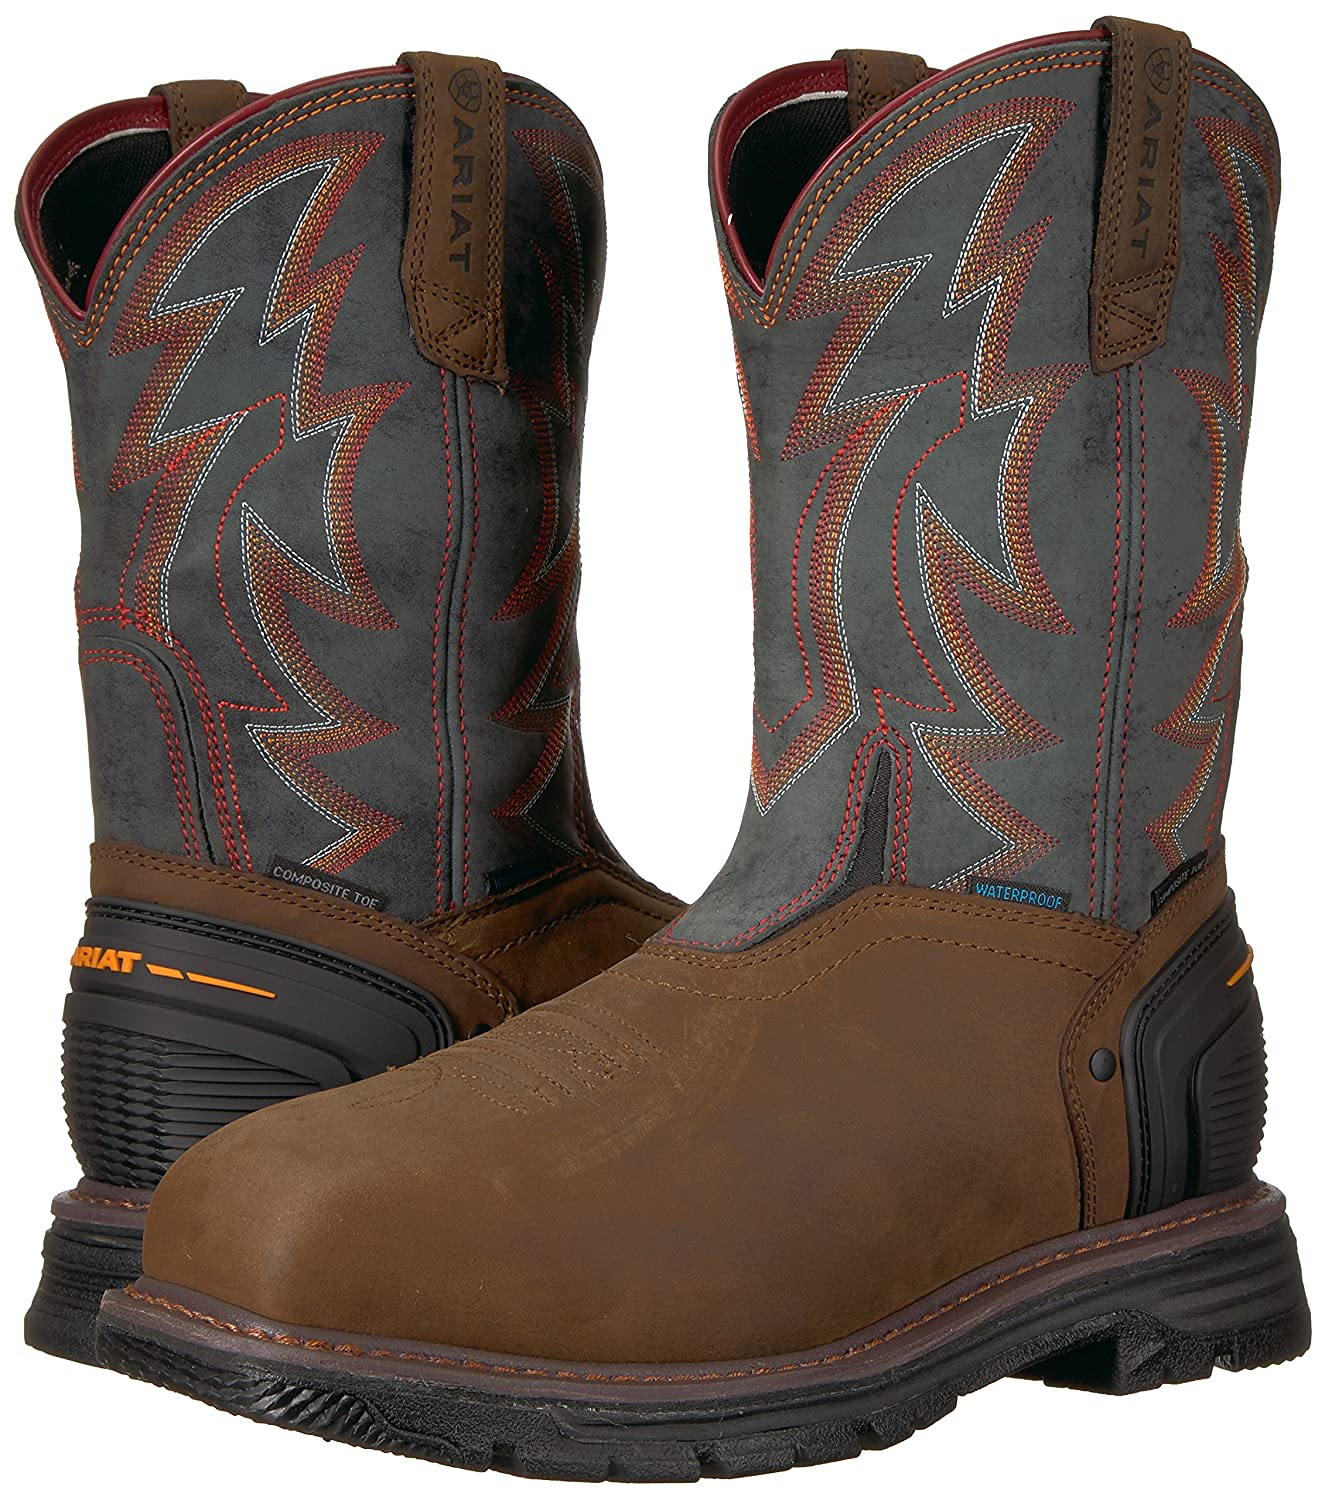 Men's Ariat Catalyst Thunder VX H2O Composite Toe Work Boot, Size: 11 2E, Oily Distressed Brown Leather